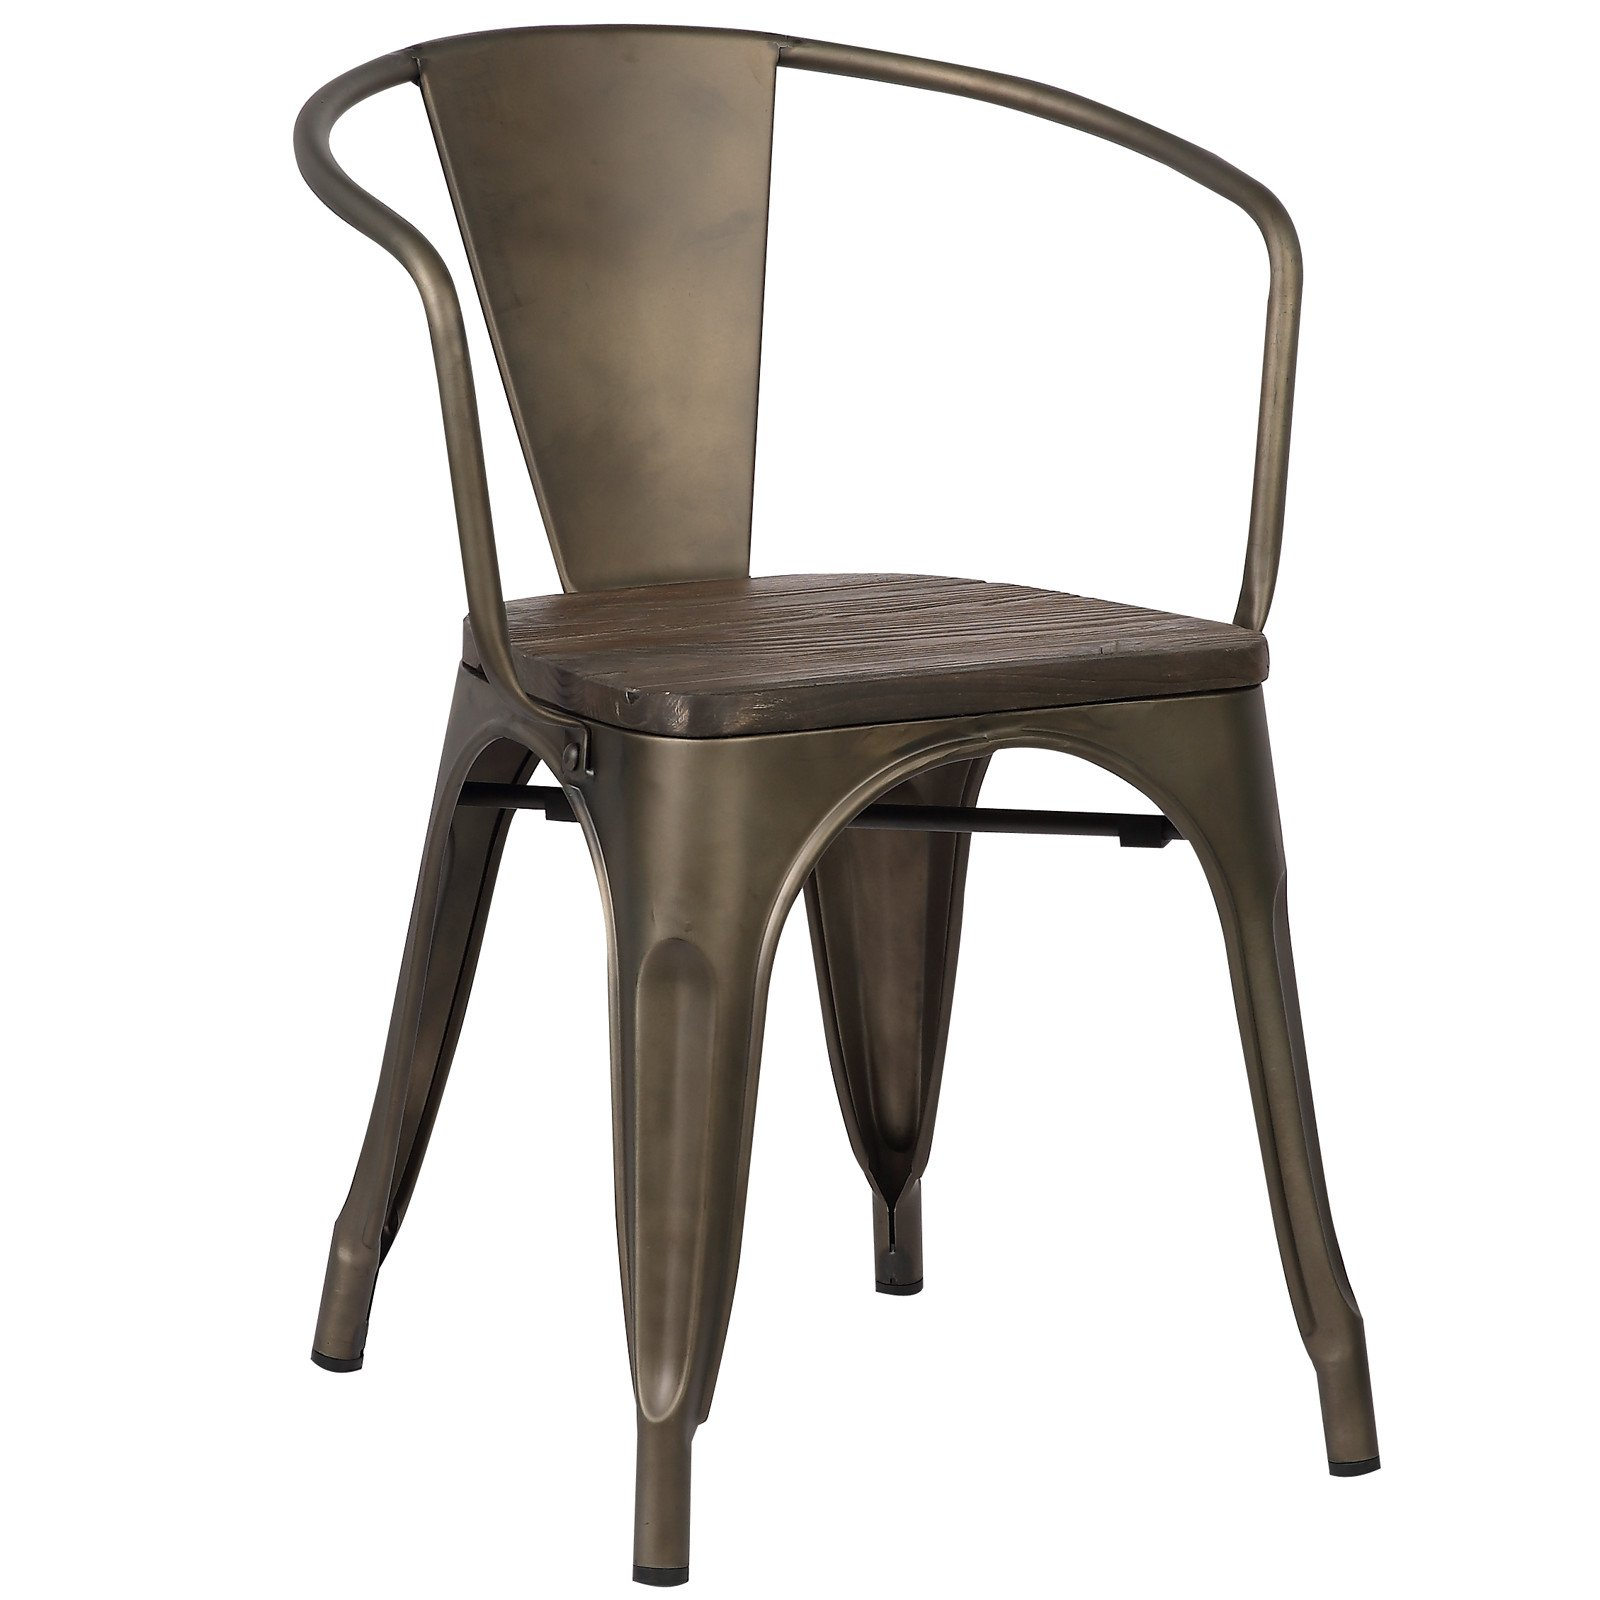 Poly and Bark Trattoria Arm Chair with Elm Wood Seat in Bronze